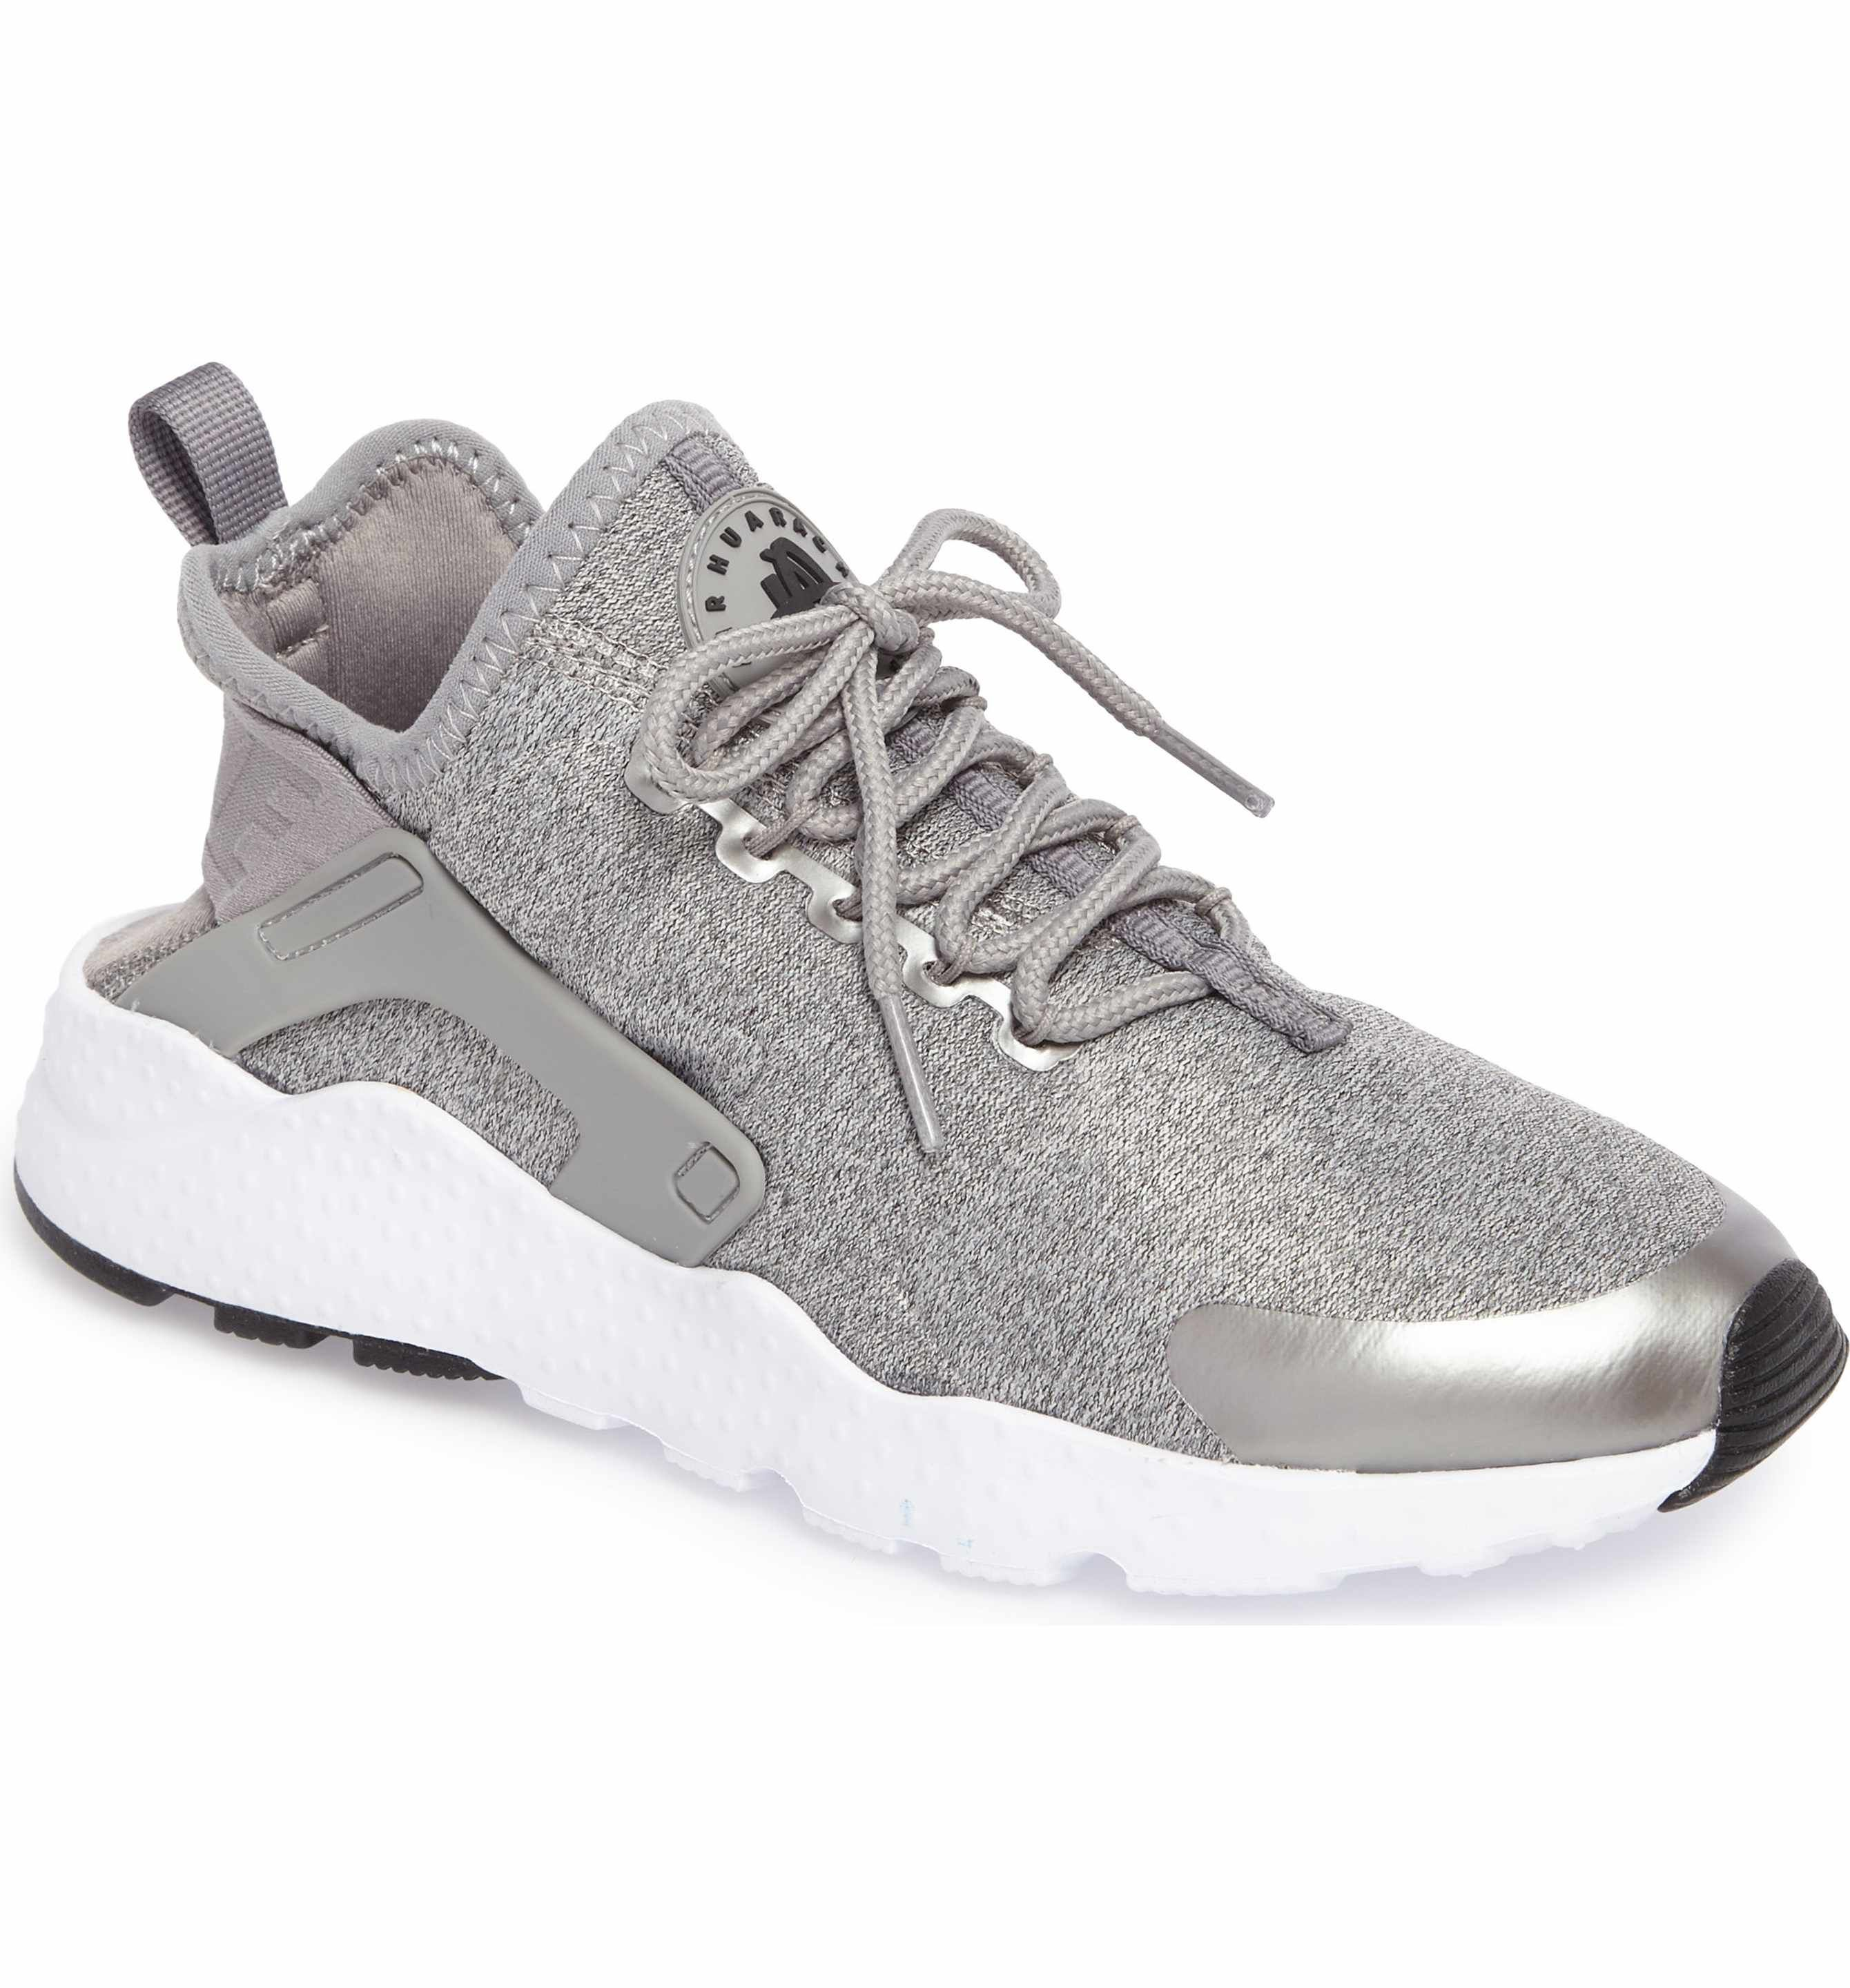 d2dda4186028 Main Image - Nike  Air Huarache Run Ultra SE  Sneaker (Women)